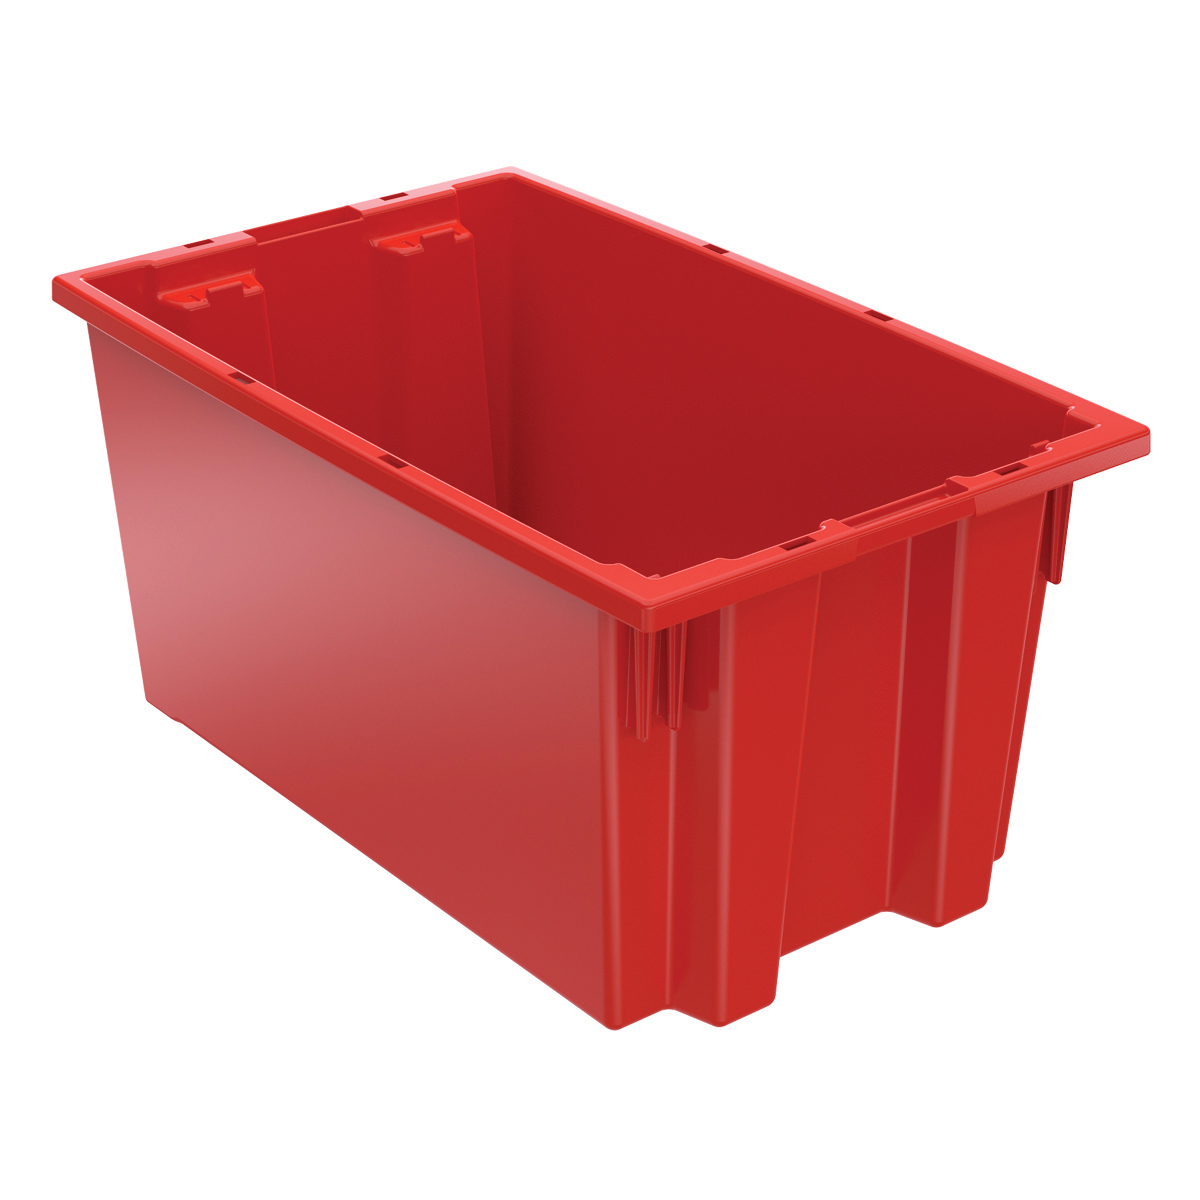 Nest & Stack Tote 18 x 11, 9, Red (35185RED).  This item sold in carton quantities of 6.